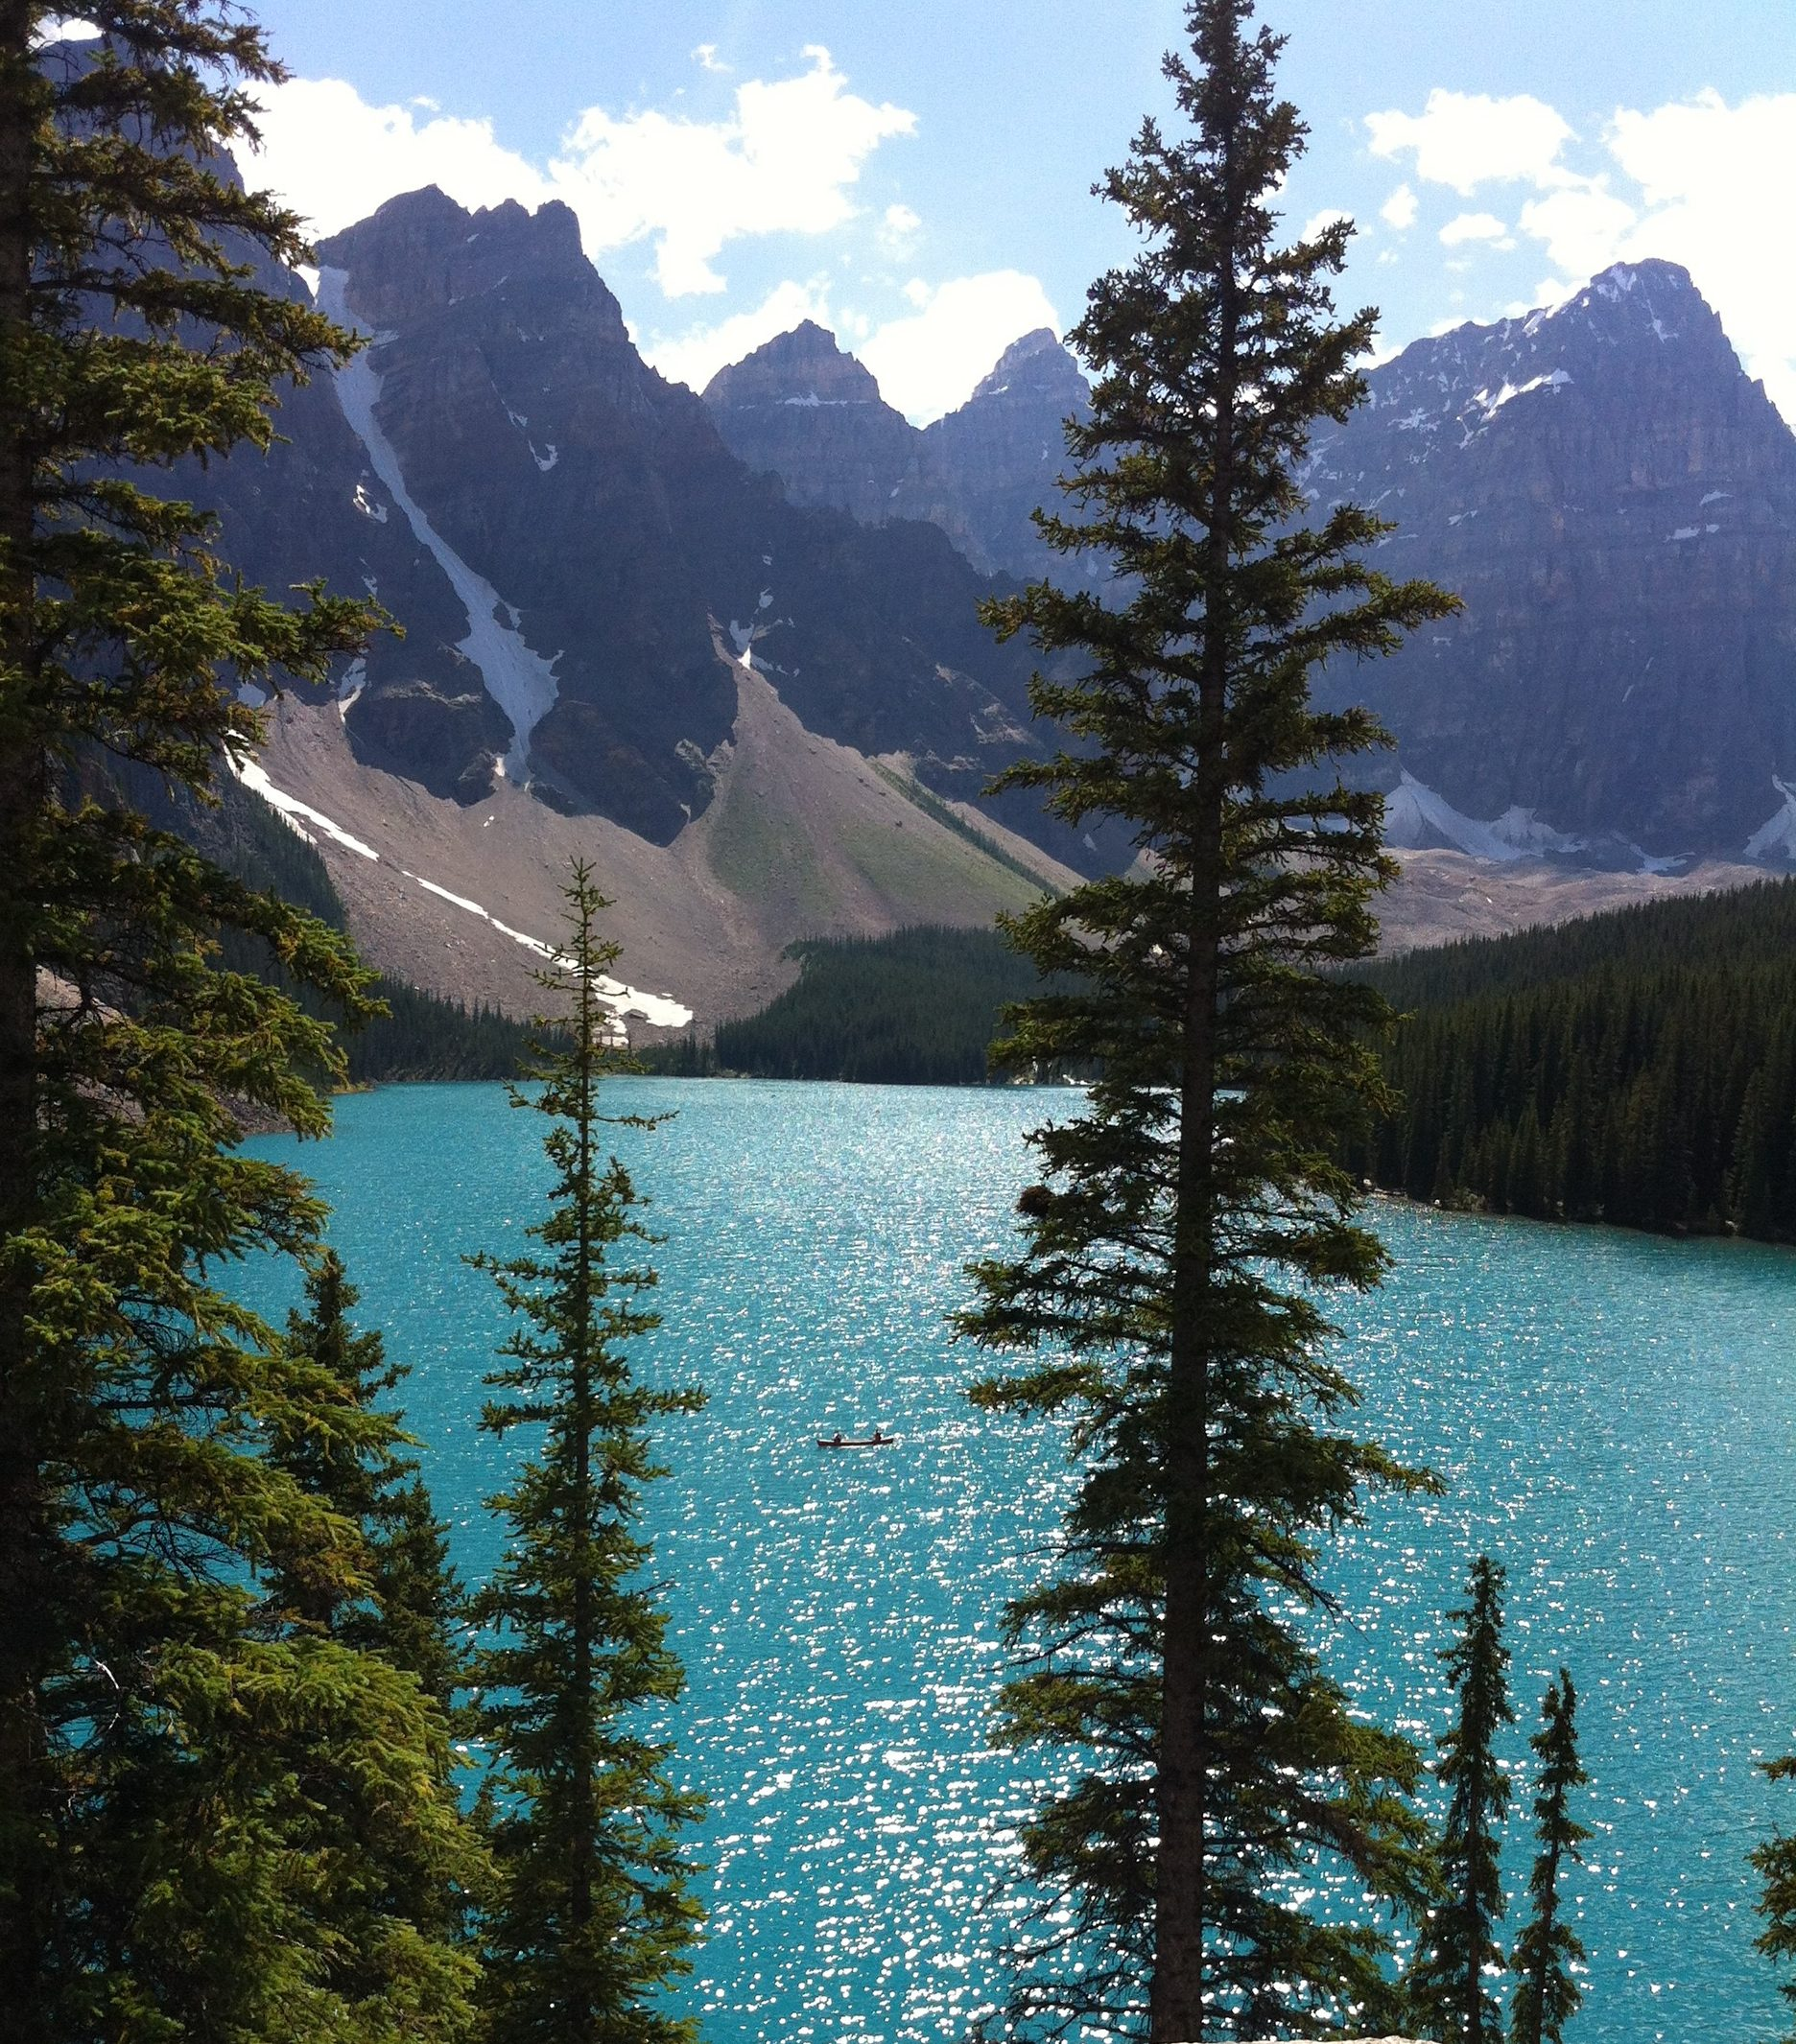 How can anyone look at the amazing landscape of Banff National Park and ever question God's existence?